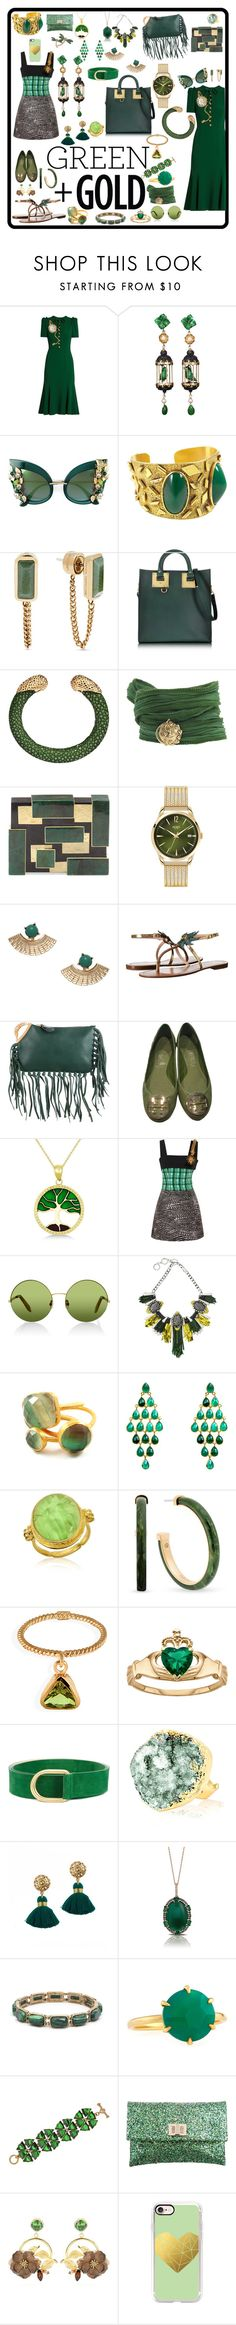 """""""Green and gold choices"""" by tori-holbrook-th ❤ liked on Polyvore featuring Dolce&Gabbana, Of Rare Origin, House of Lavande, Michael Kors, Sophie Hulme, Catherine Michiels, Rafe, Henry London, Kate Spade and Valentino"""